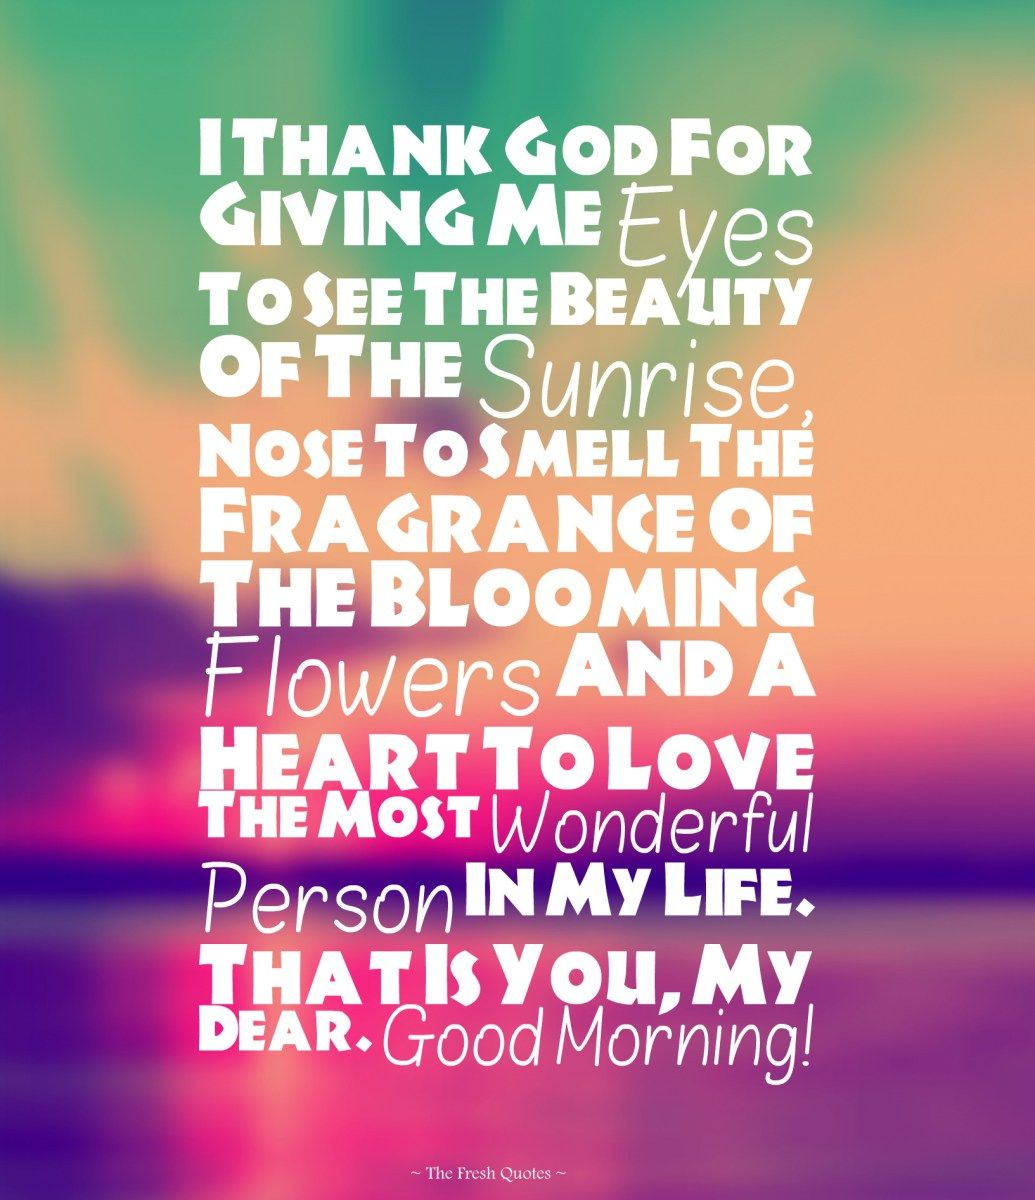 Romantic Good Morning Love Quotes For Her Twitter